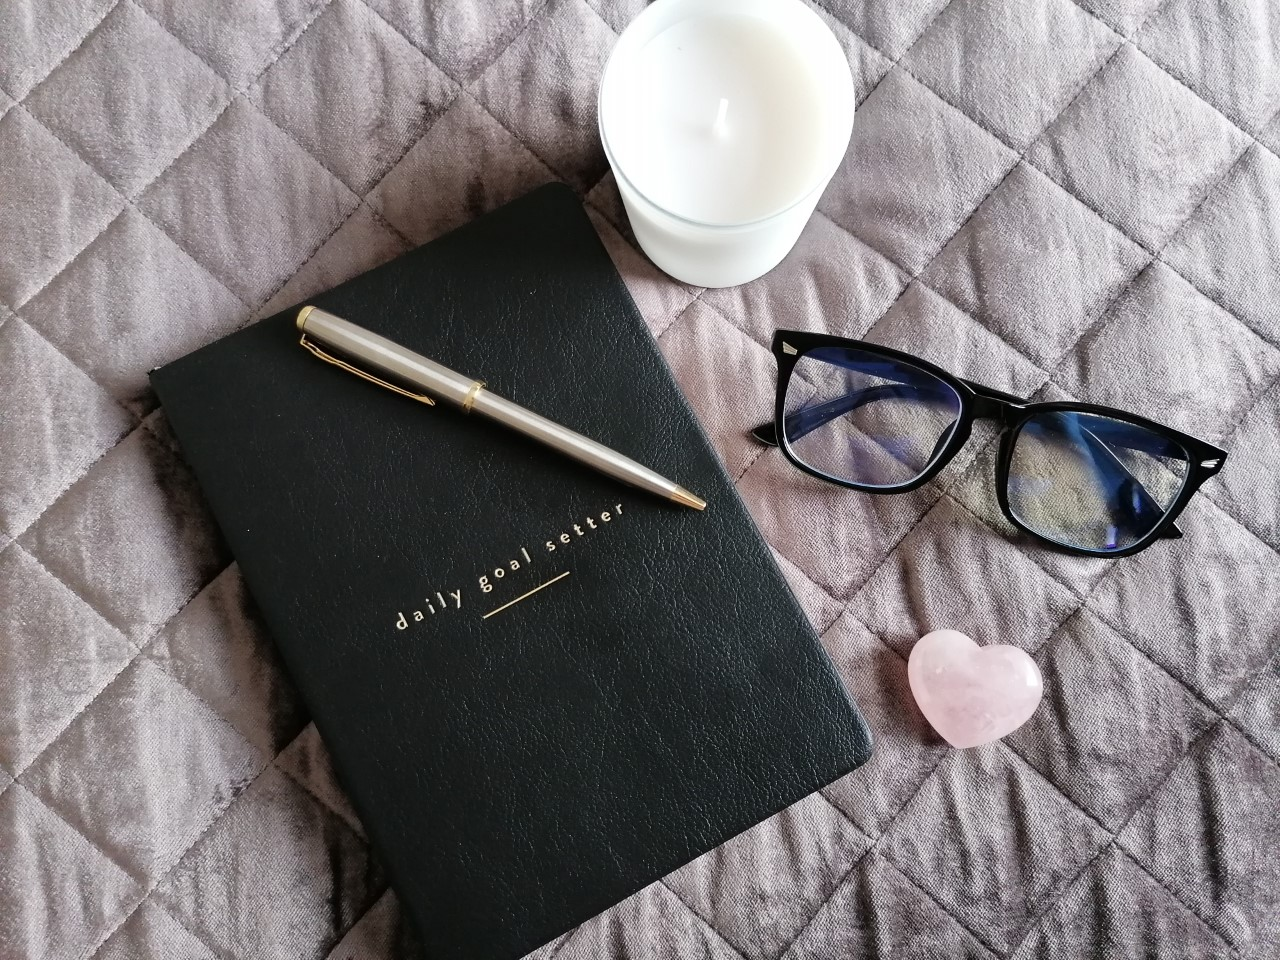 Mal Paper Daily Goal Setter Planner and Pen